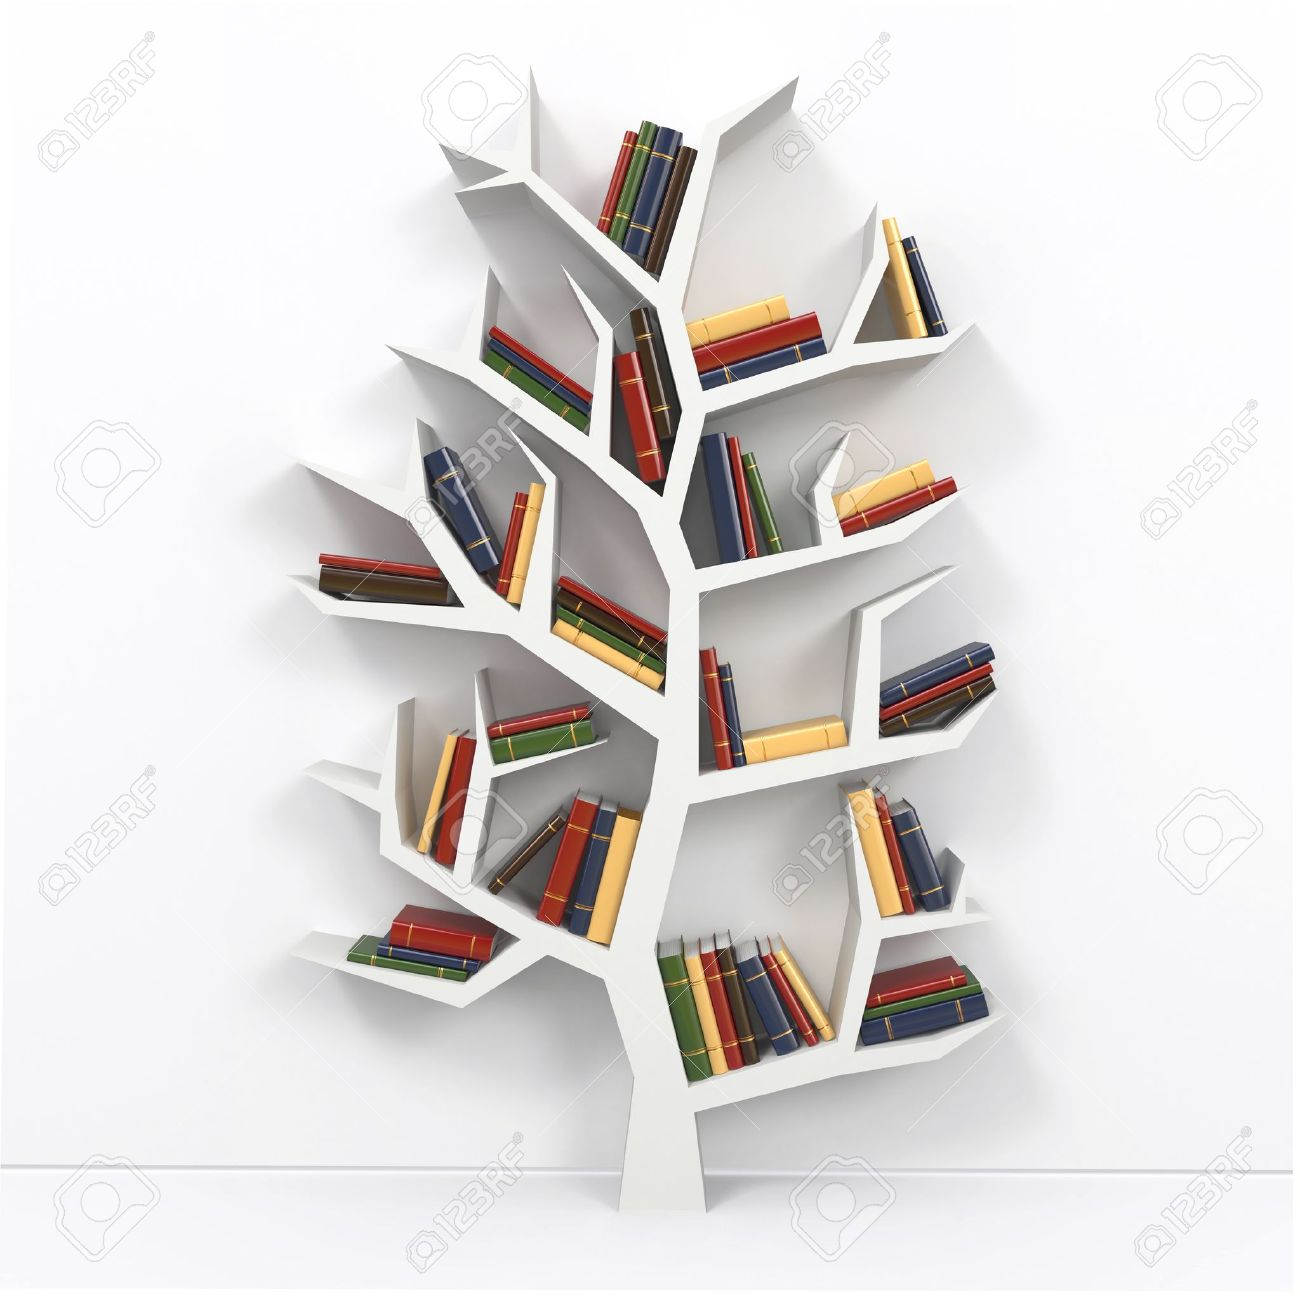 Tree Of Knowledge Bookshelf On White Background 3d Stock Photo